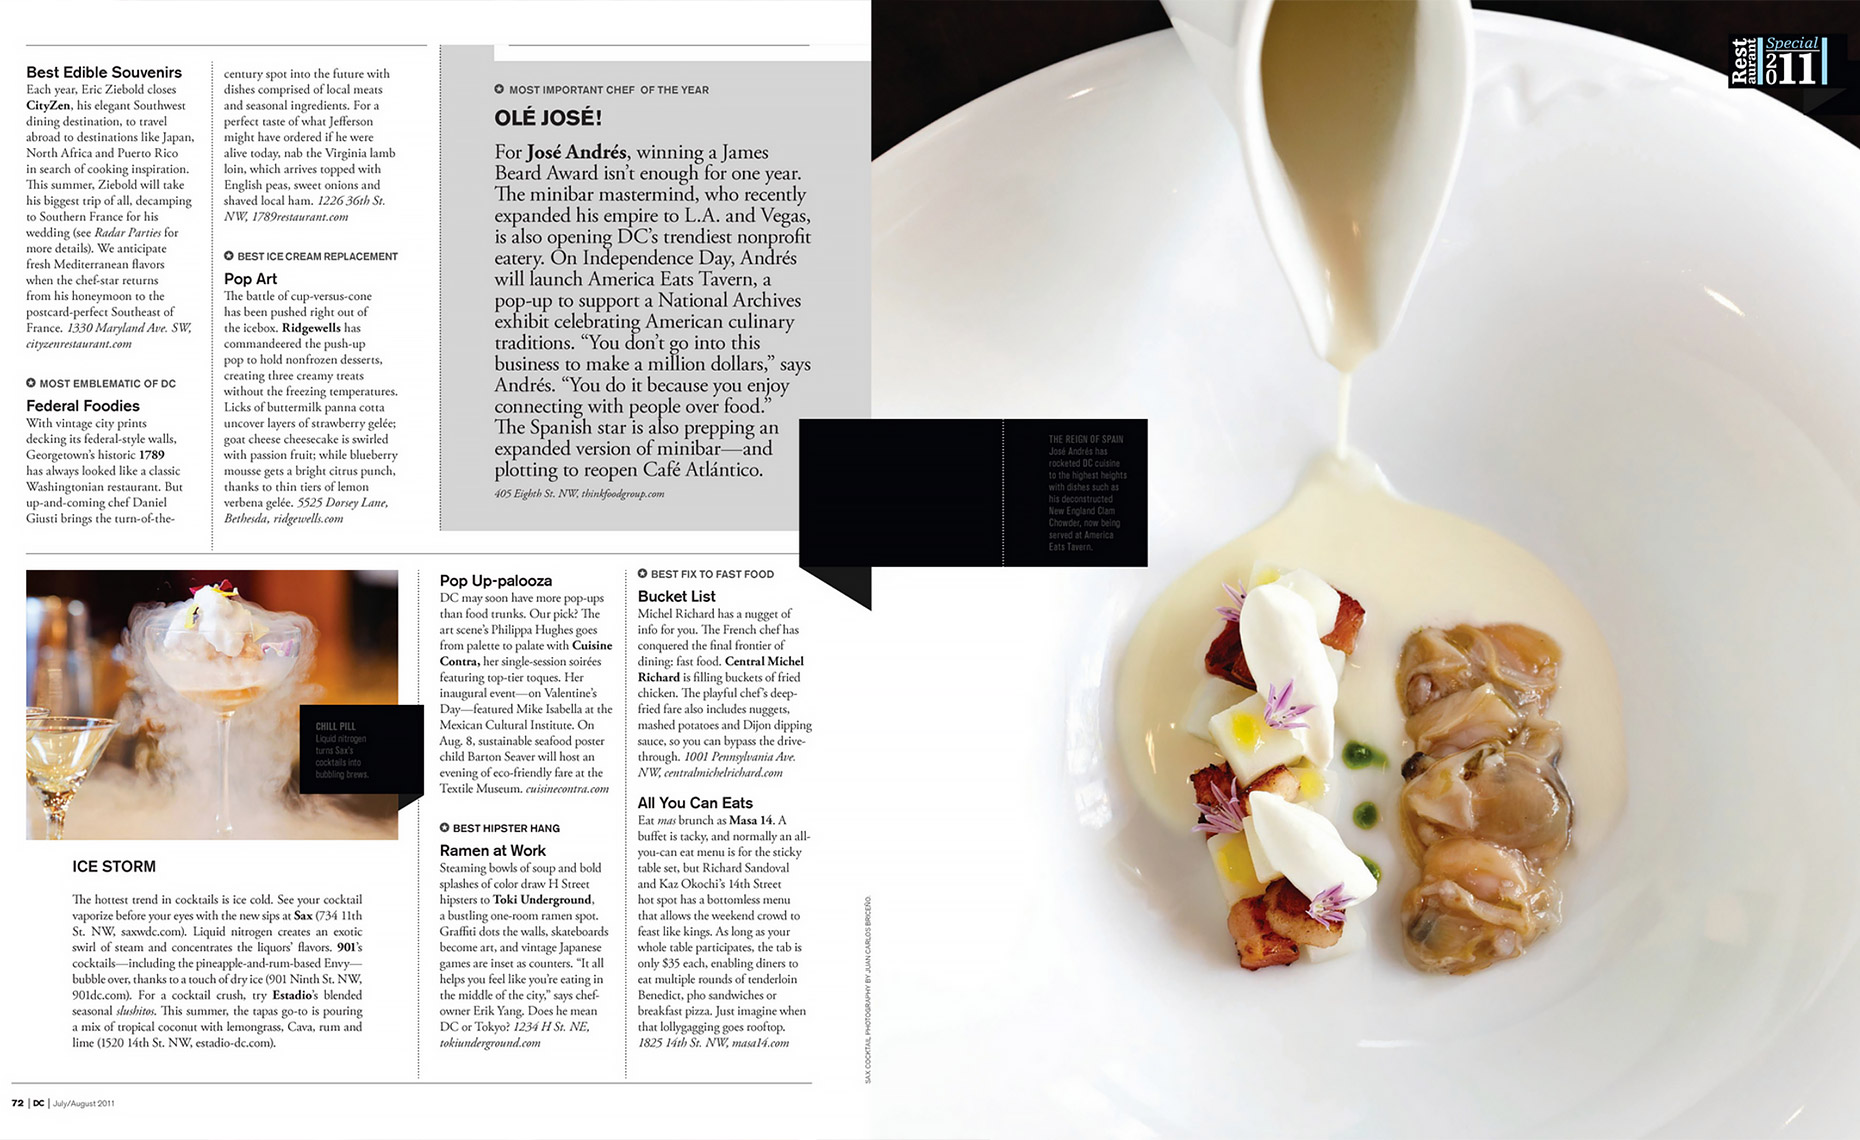 REST-Articles66-Restaurant-Issue